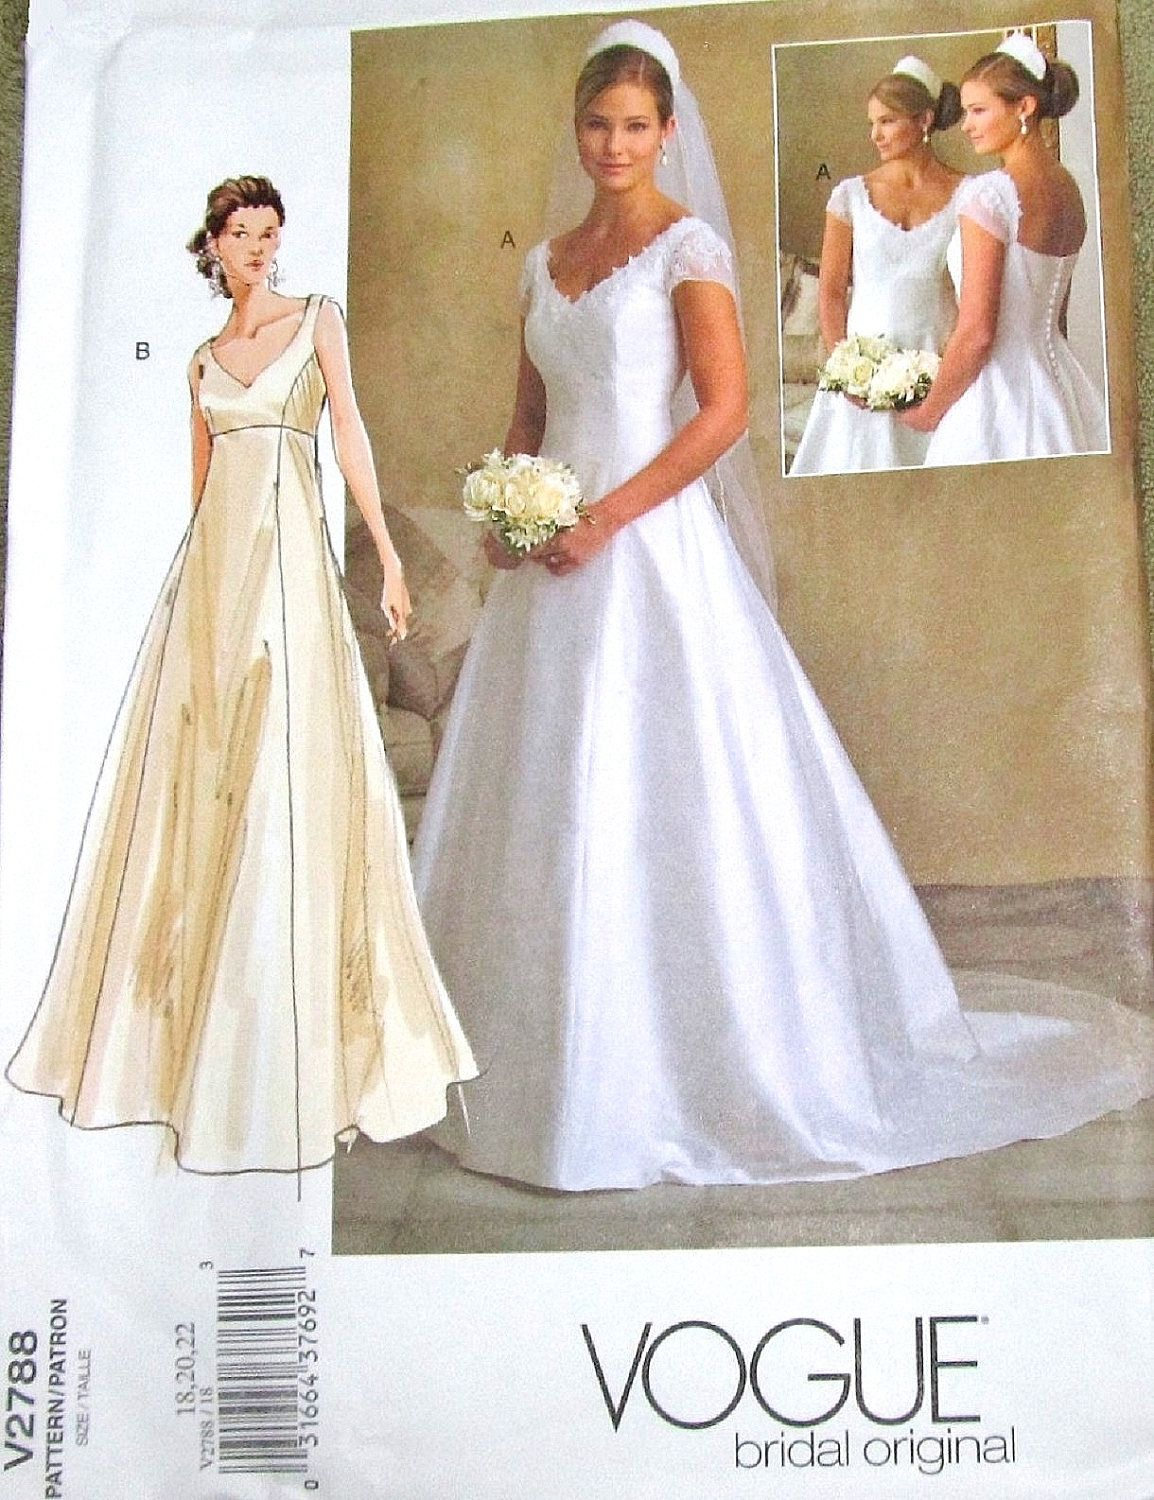 Sewing Pattern Vogue Bridal Original 2788 Wedding Gown Fitted Empire Dress Train Women Miss Size 18 20 22 Bust 40 42 44 Uncut Factory Folds By